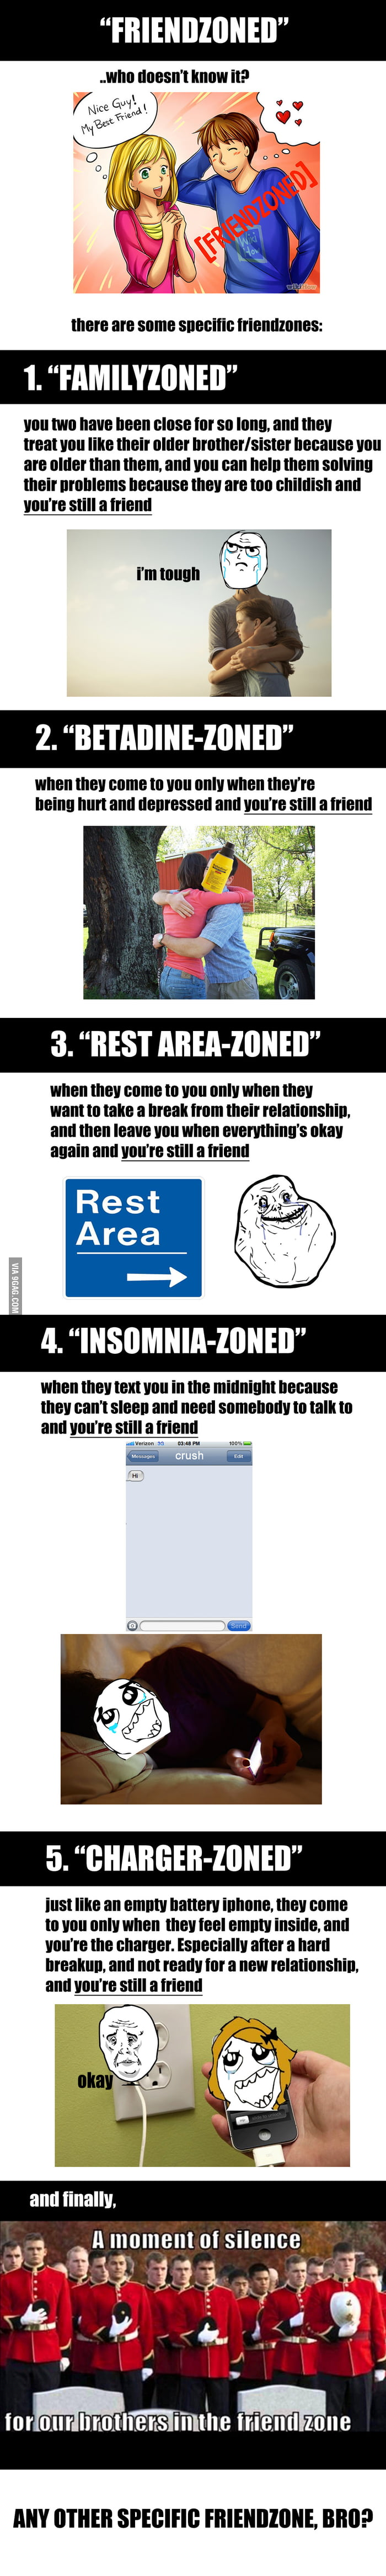 Any other zones other than the friend-zone?